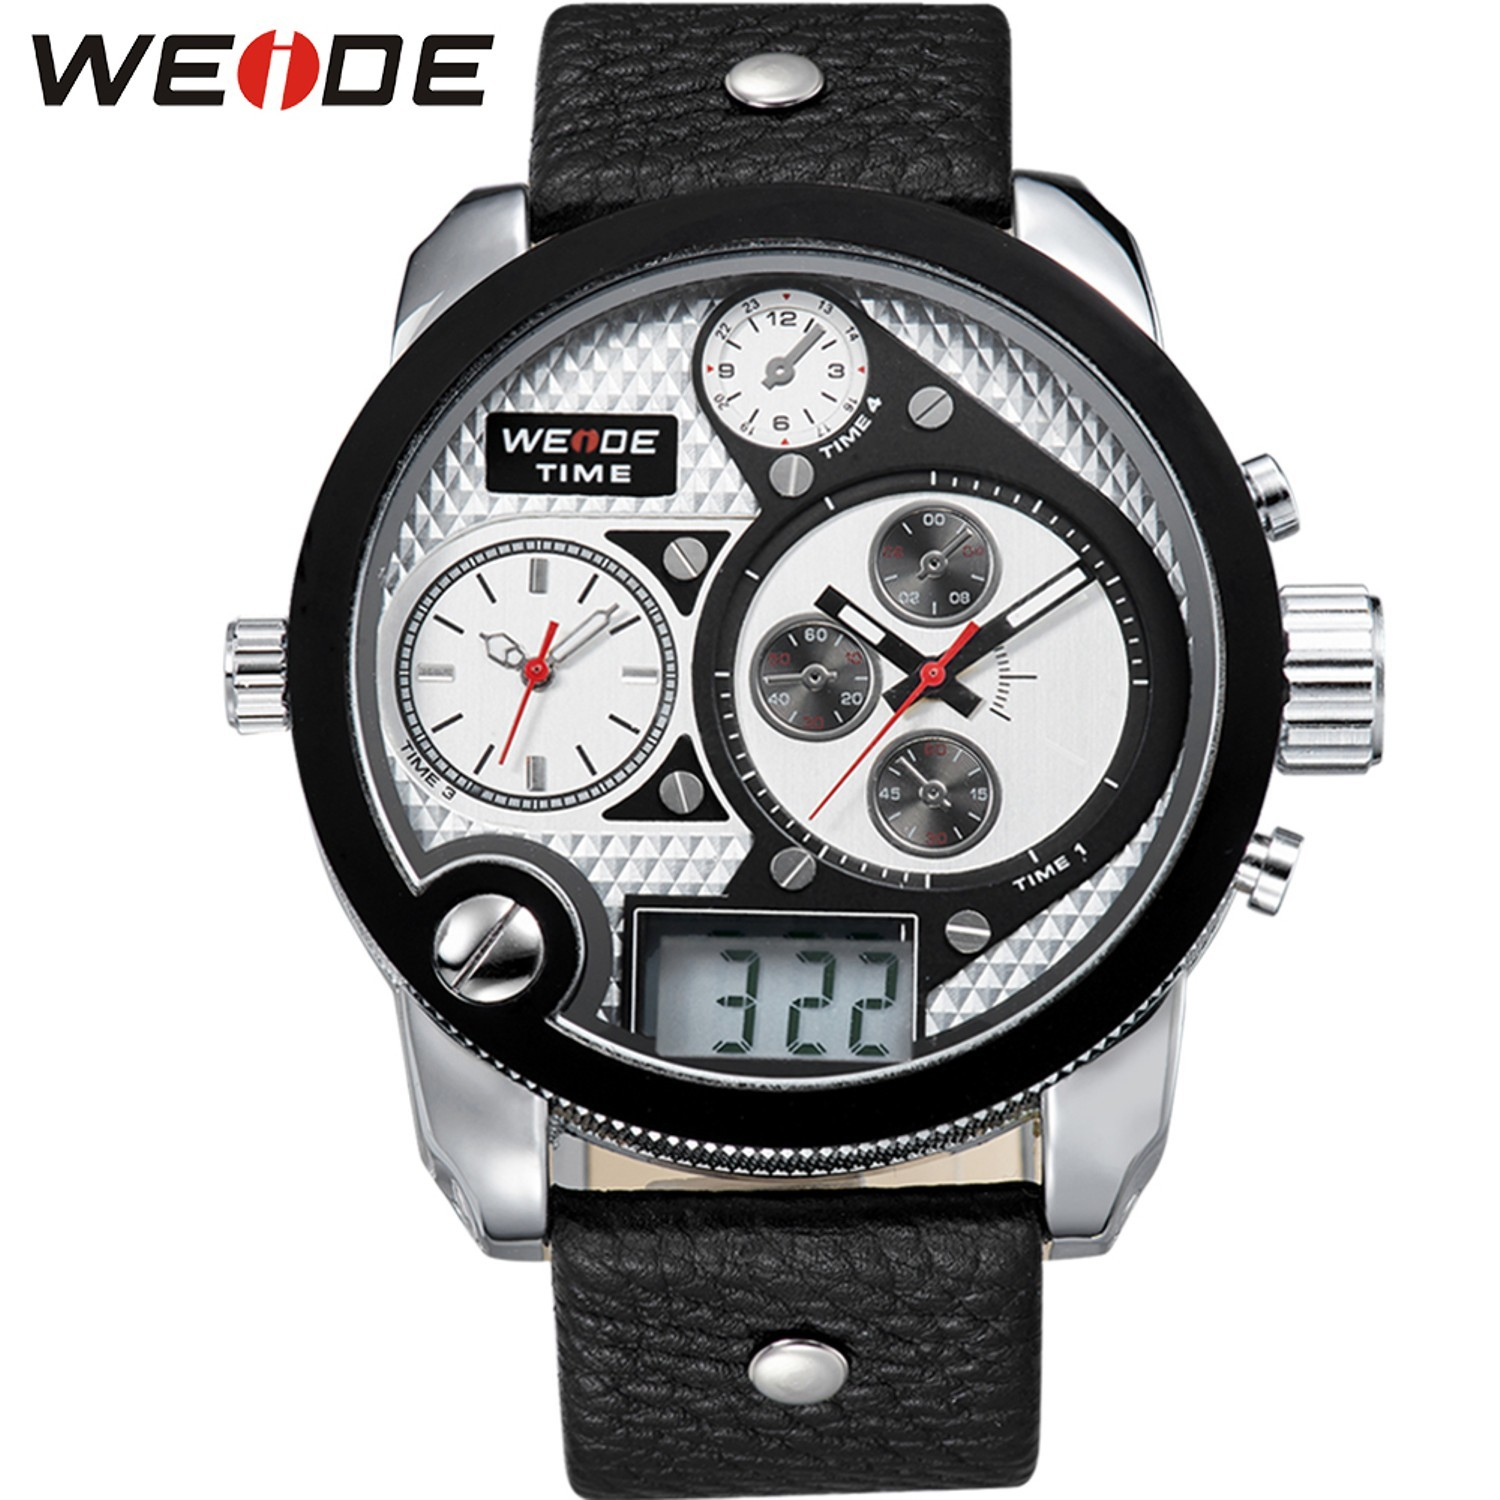 WEIDE-Mens-Sport-Analog-Digital-Watches-Casual-Black-Leather-Strap-Multiple-Time-Zone-Date-Reapter-Quartz_1500x1500_STRETCH_451.jpg